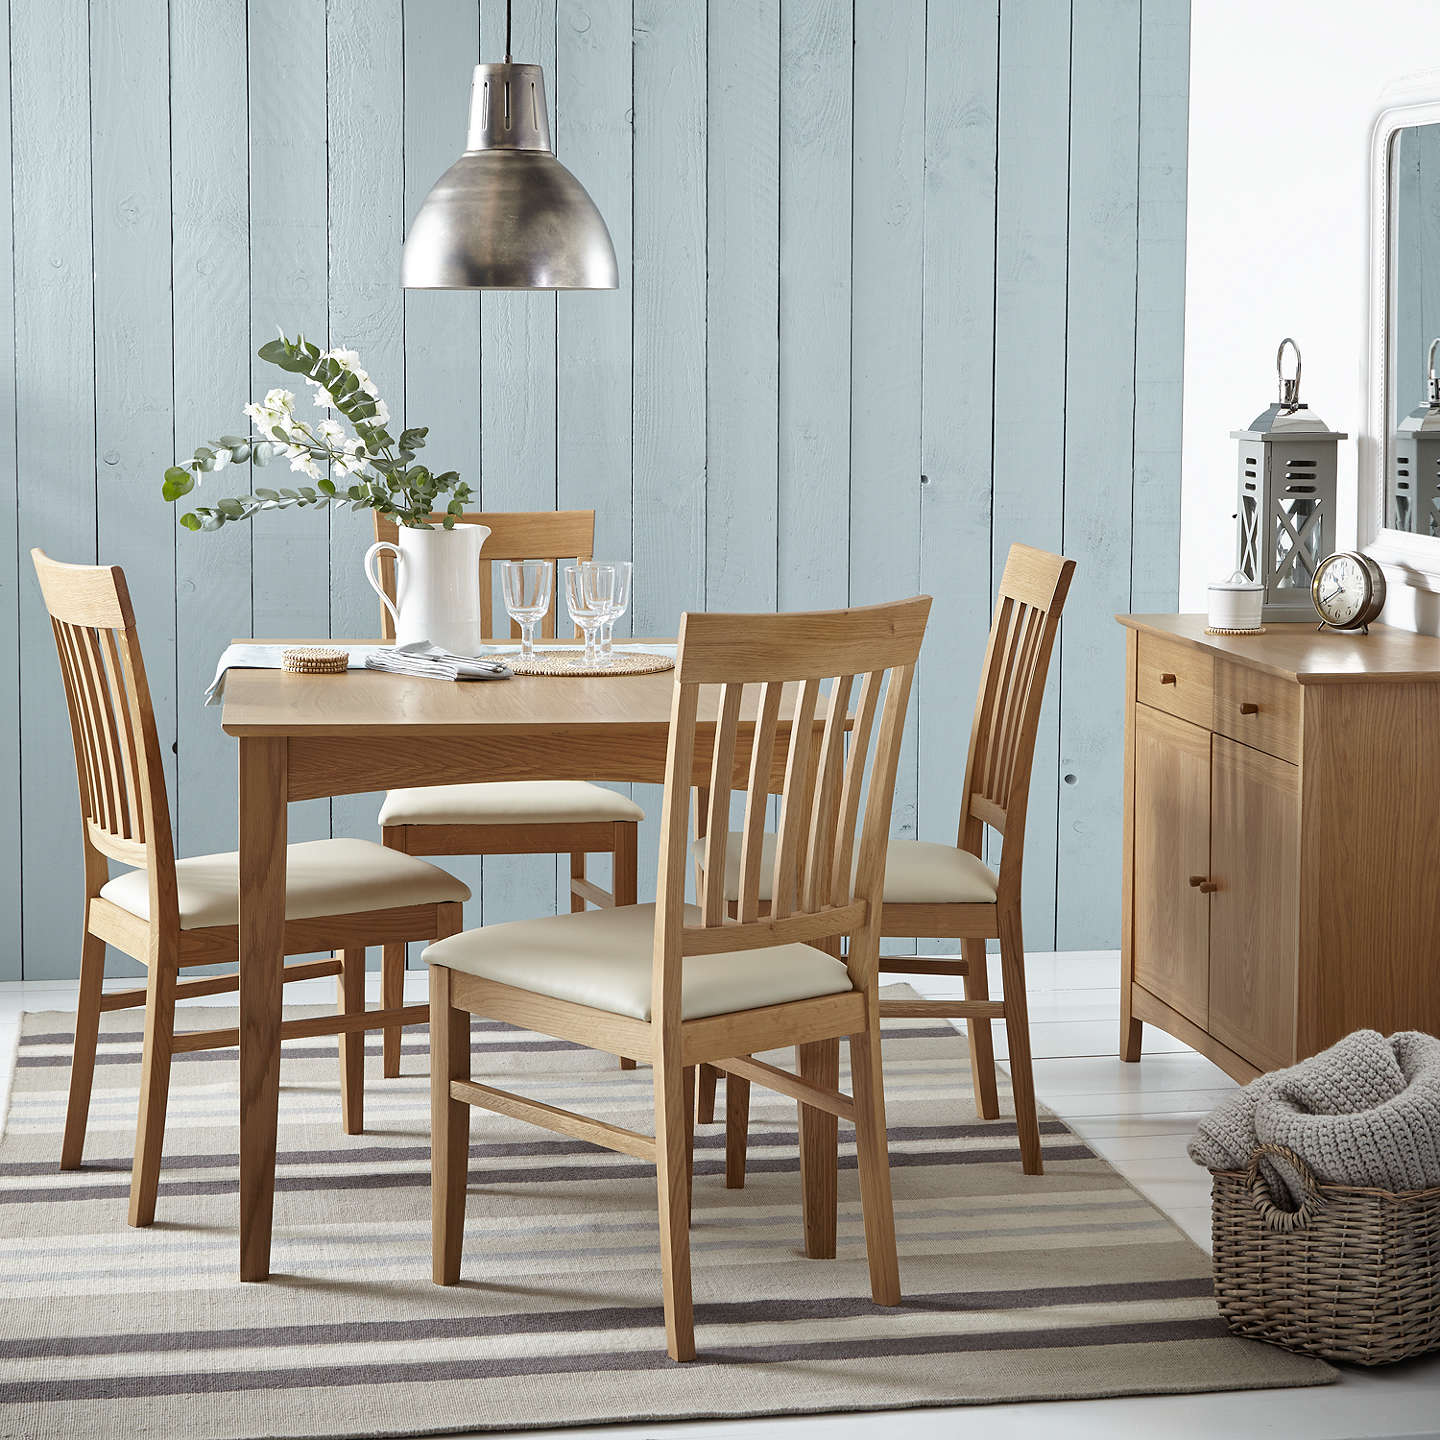 BuyJohn Lewis Alba 4 6 Seater Extending Dining Table Oak Online At Johnlewis